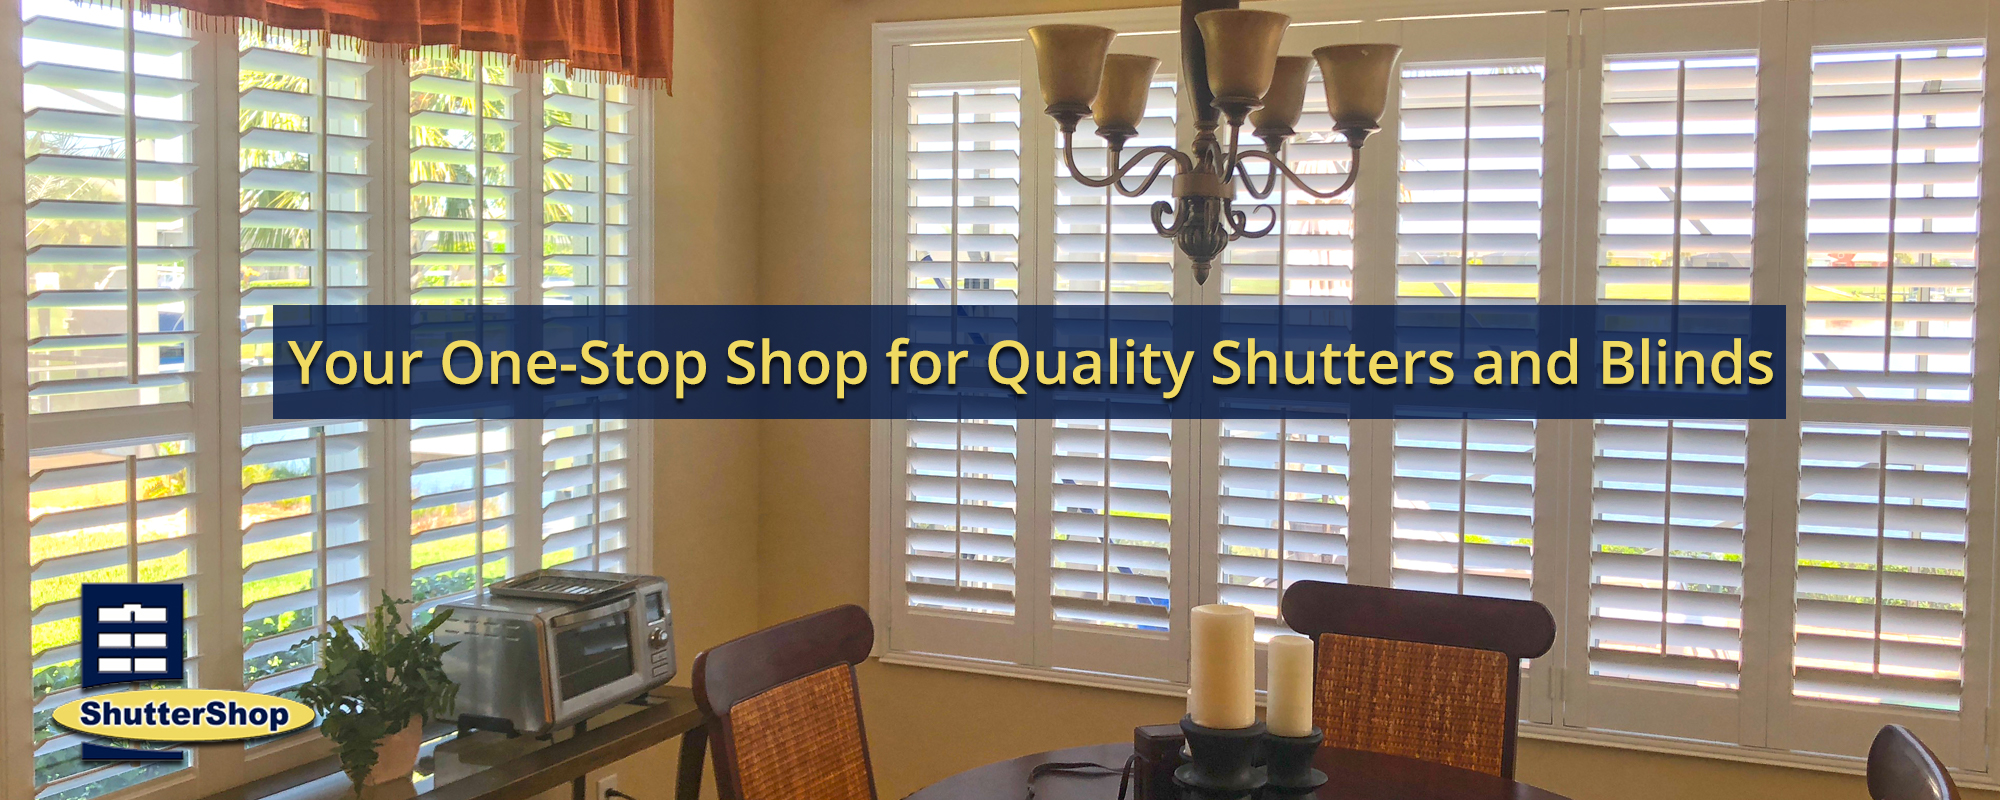 Window Treatments - Blinds, Shades and Shutters 004